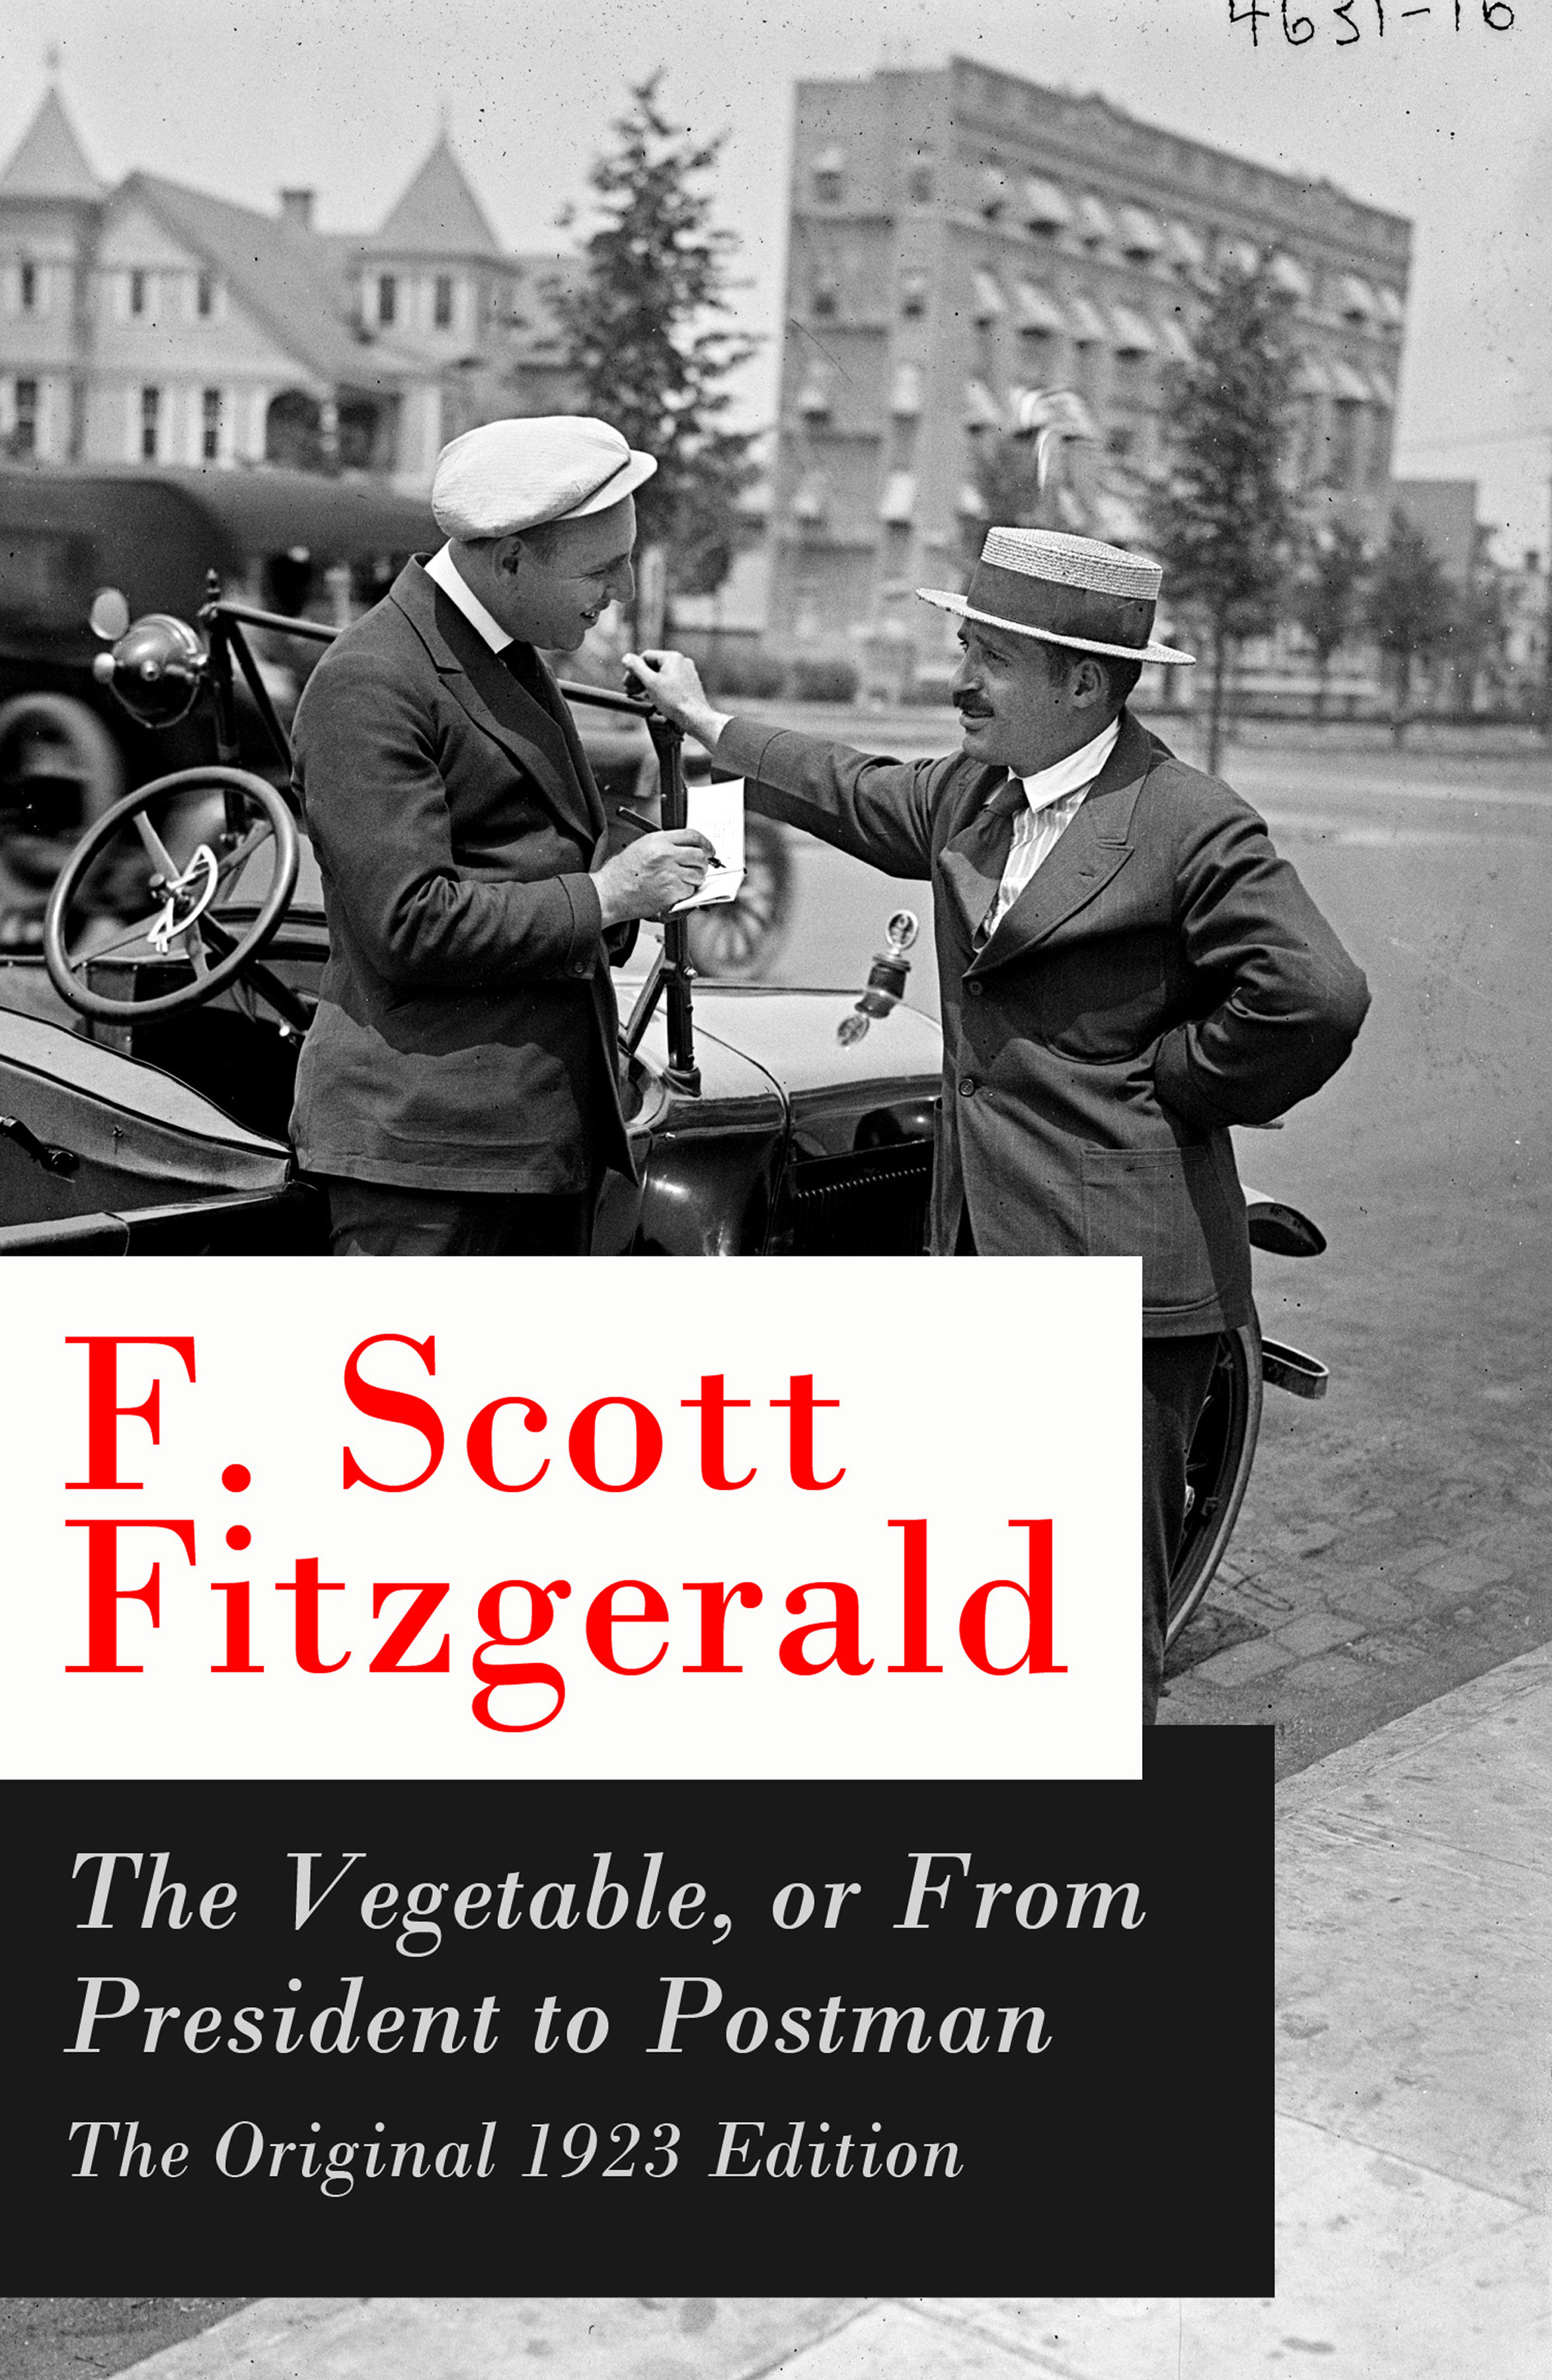 Фото - F. Scott Fitzgerald The Vegetable, or From President to Postman - The Original 1923 Edition: a play following The Beautiful and Damned cengage learning gale a study guide for f scott fitzgerald s a new leaf